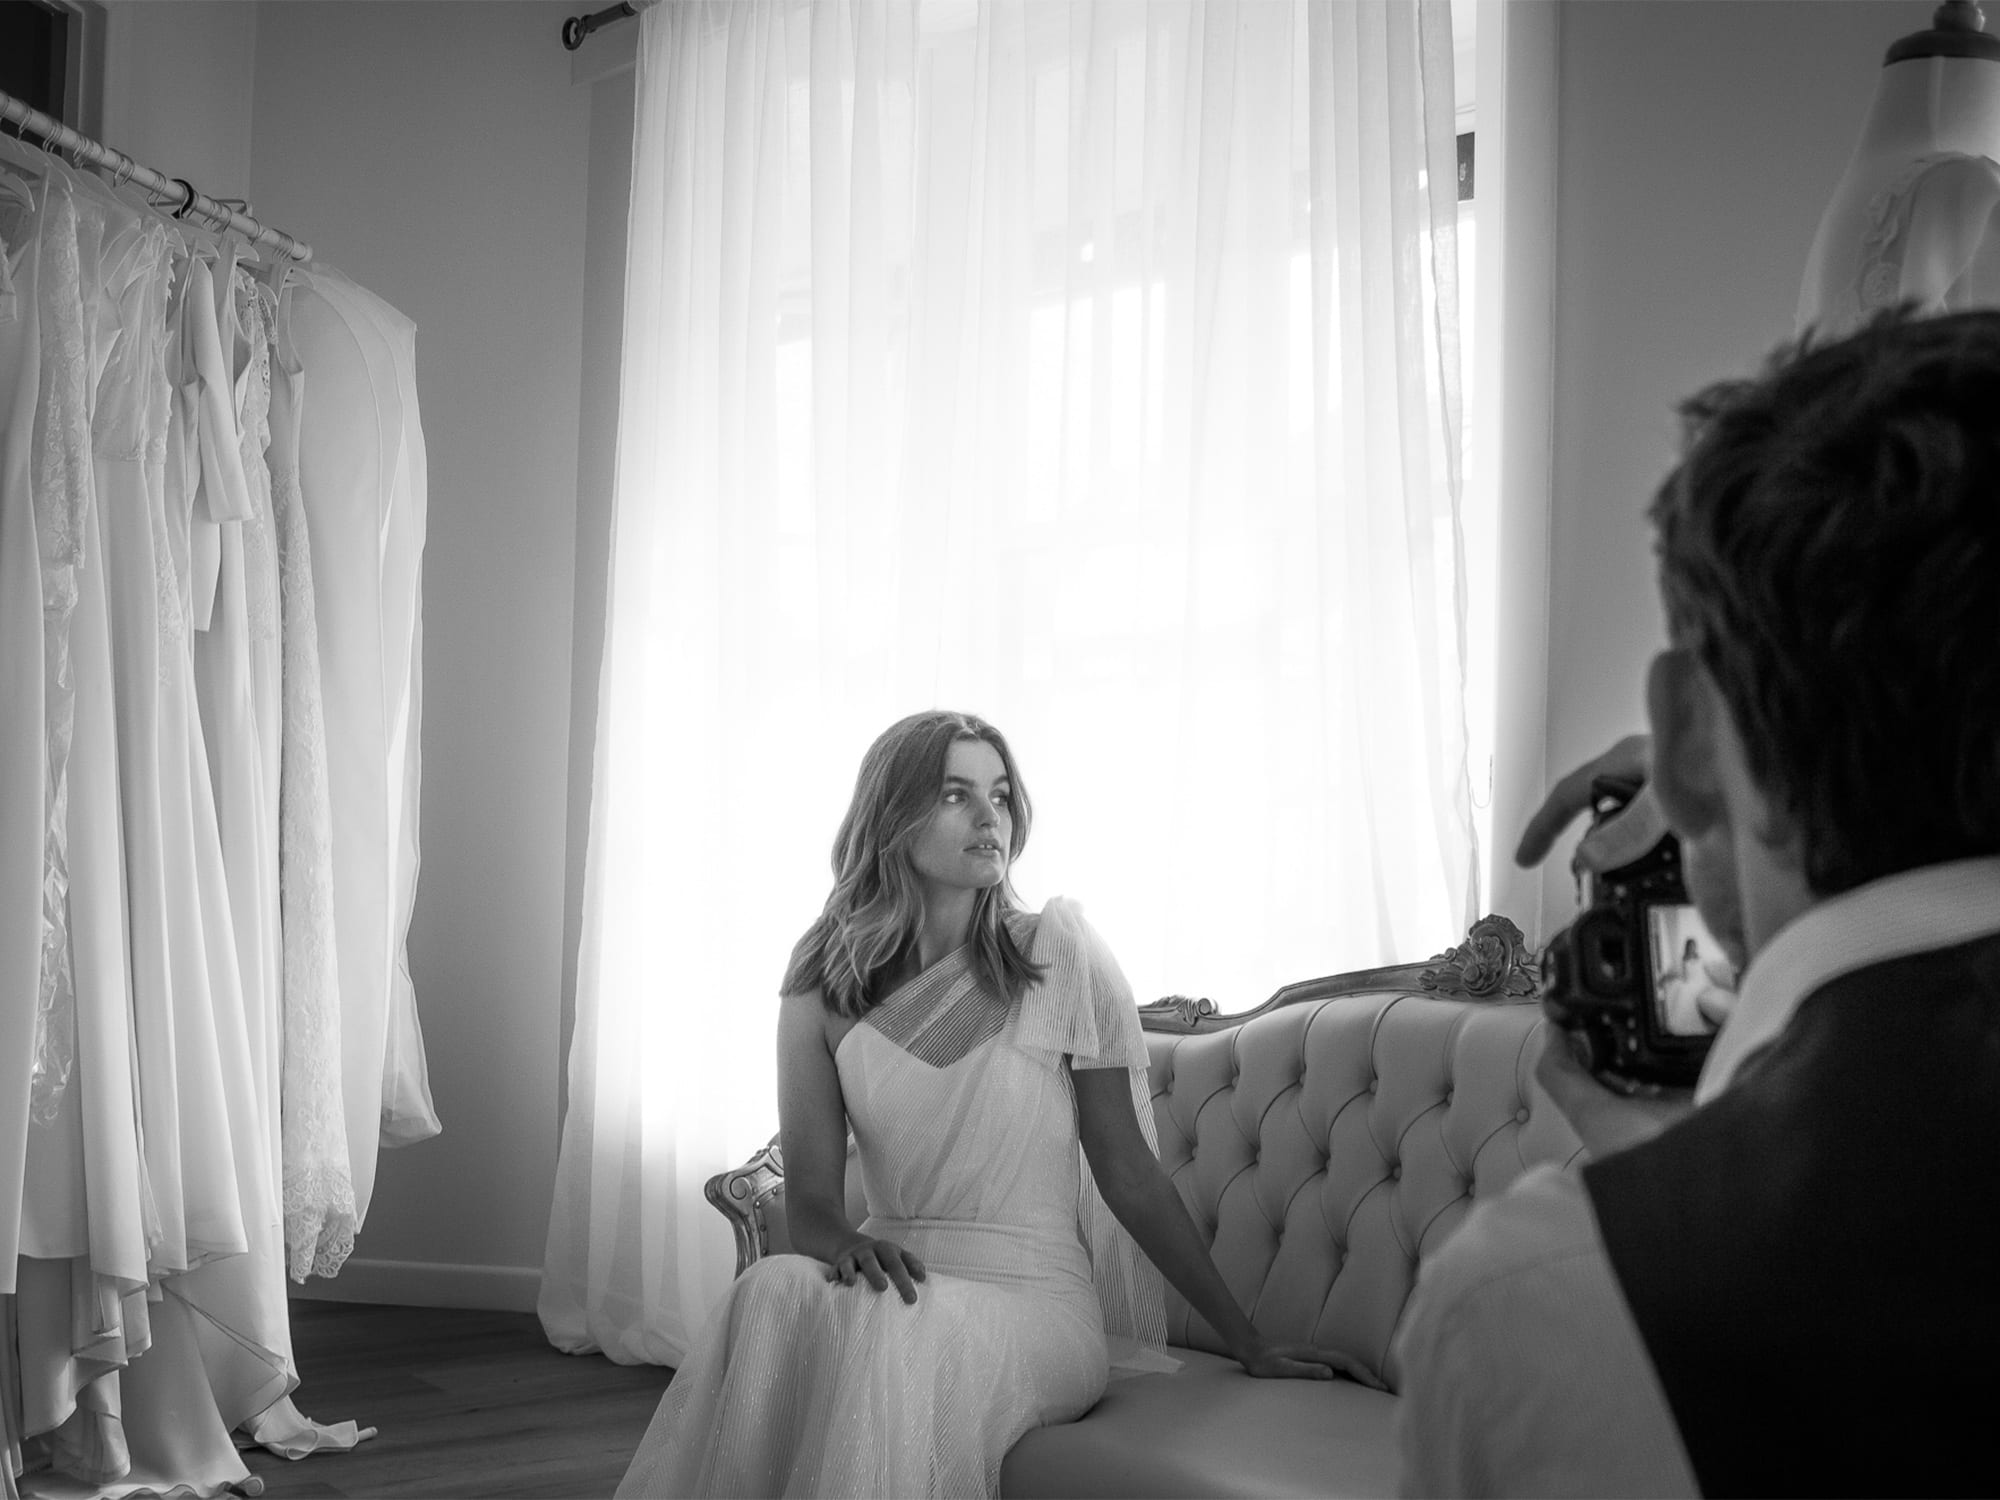 a woman in a white wedding gown sits on a sofa as a man takes a photo